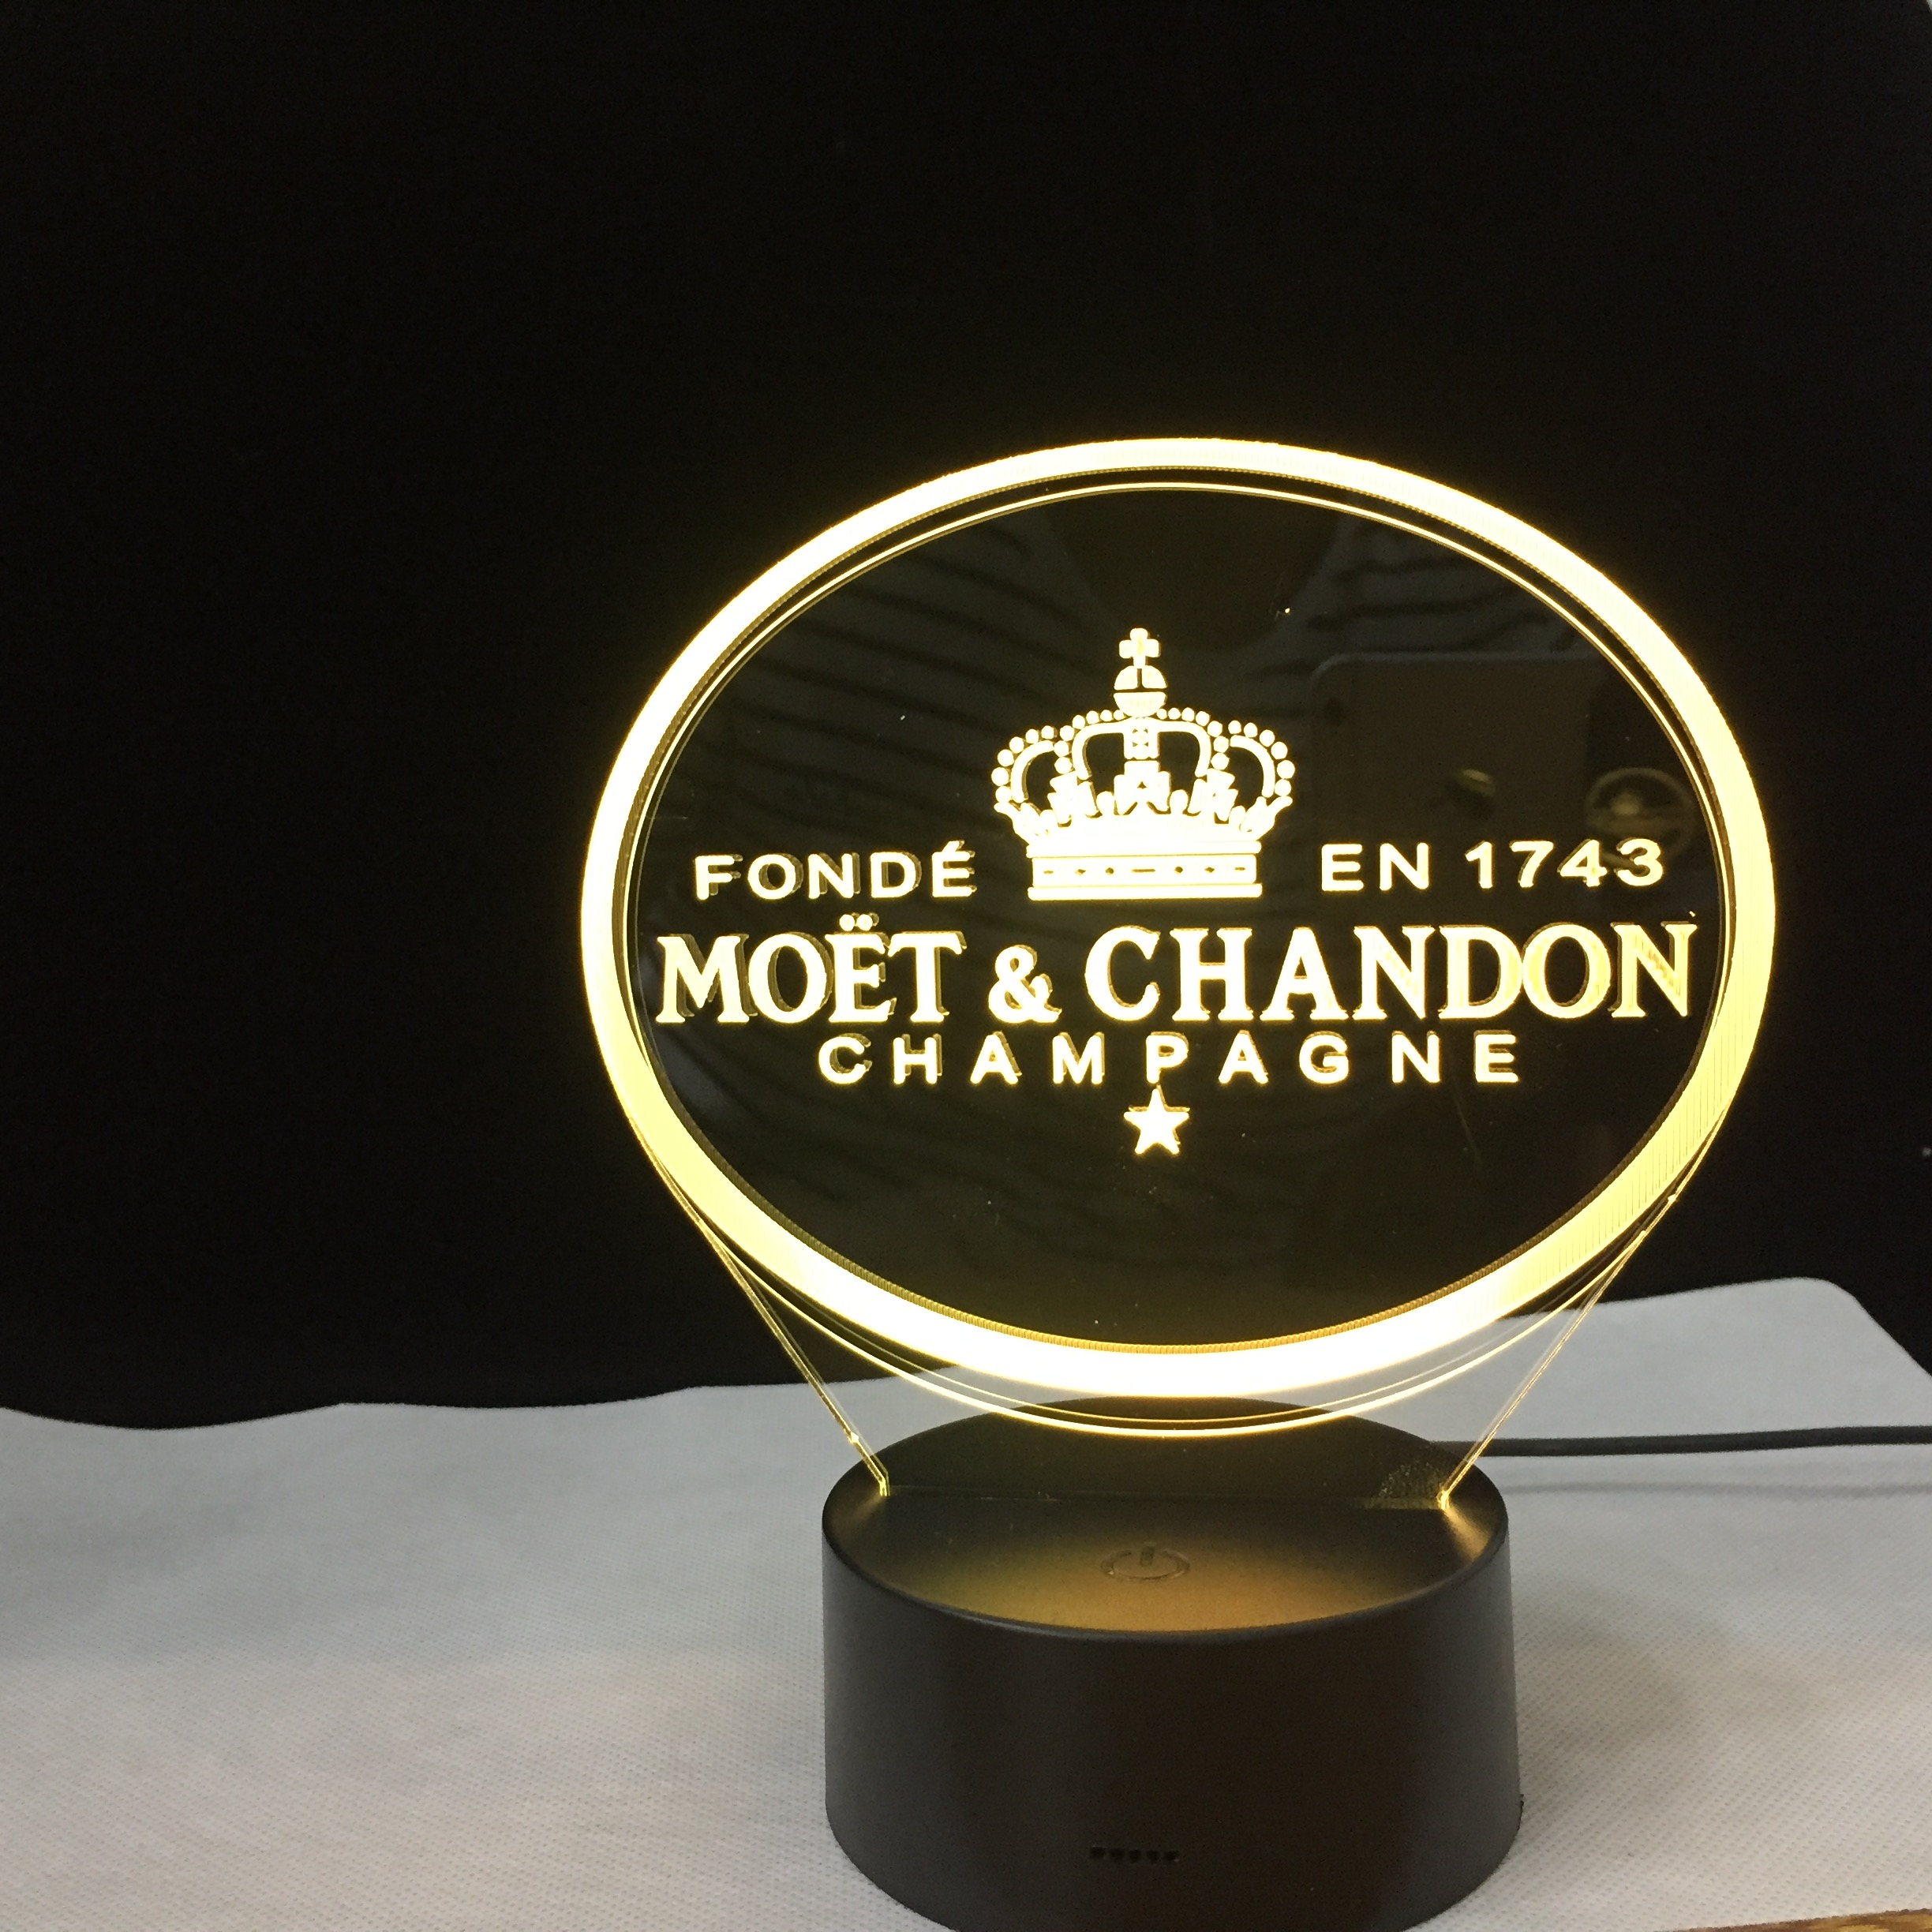 Moet Et Chandons 3D Led Night Light Lamp Gift for Clients Friend Baby Nightlight Usb or Battery Powered Office Decorative Lamp